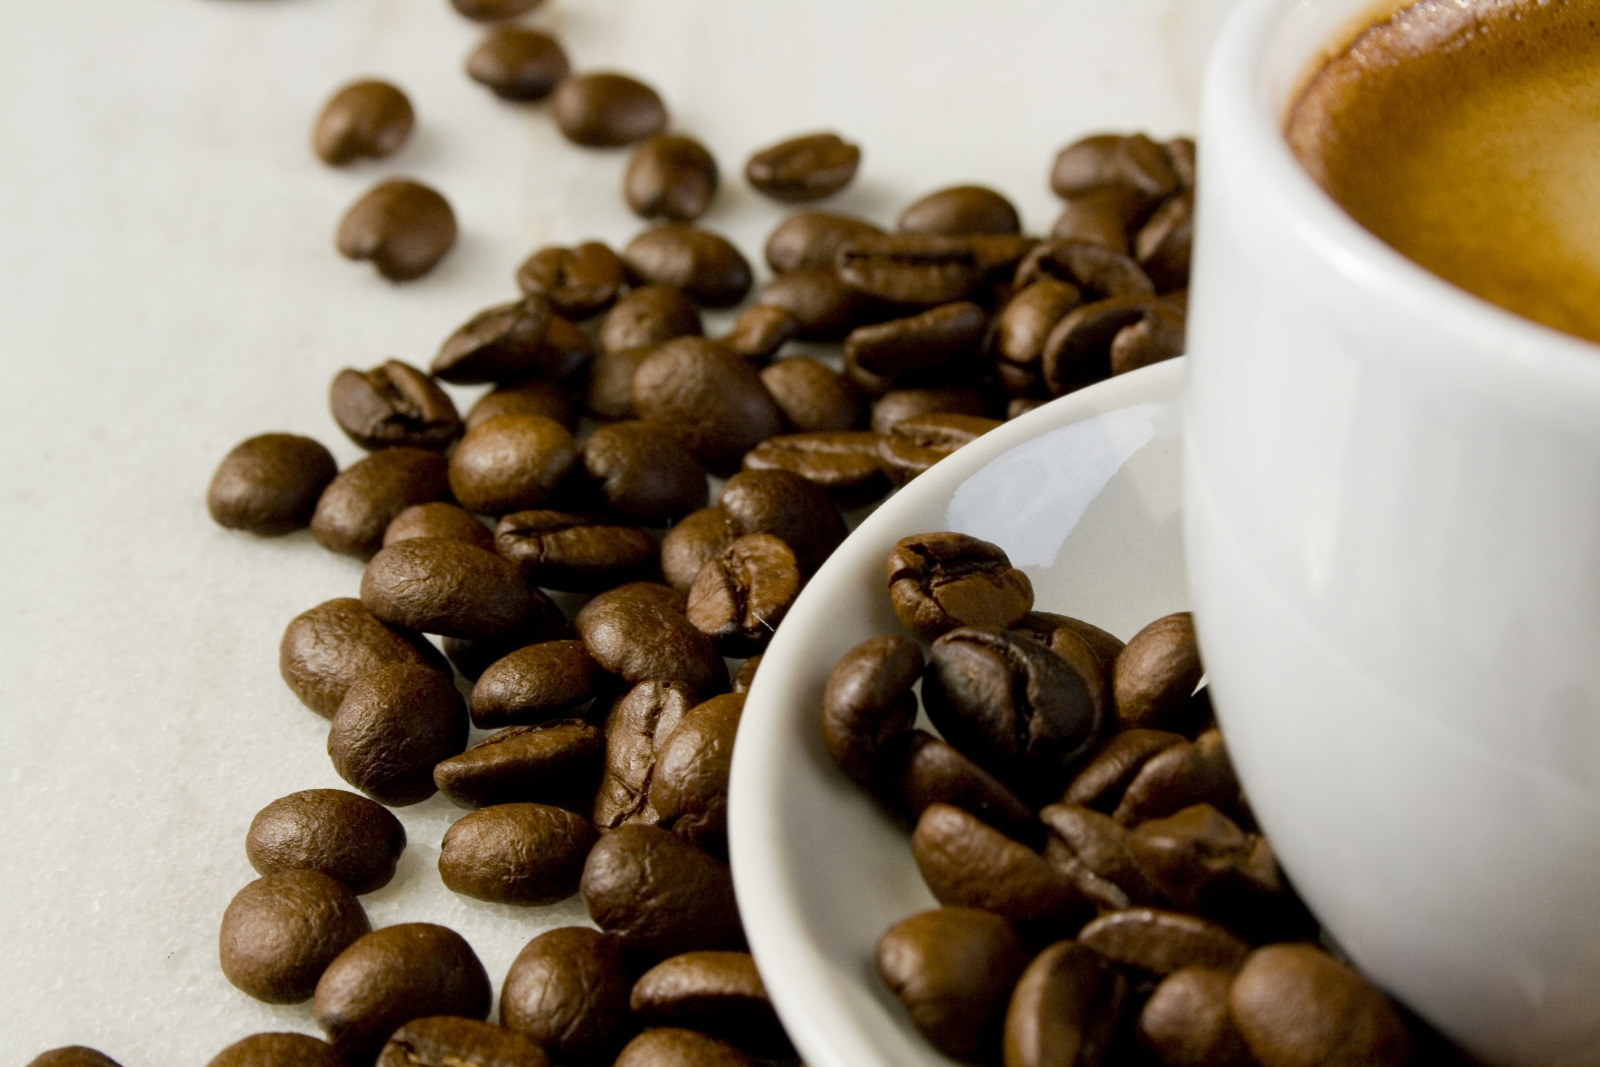 Researchers discovered the benefits of drinking coffee